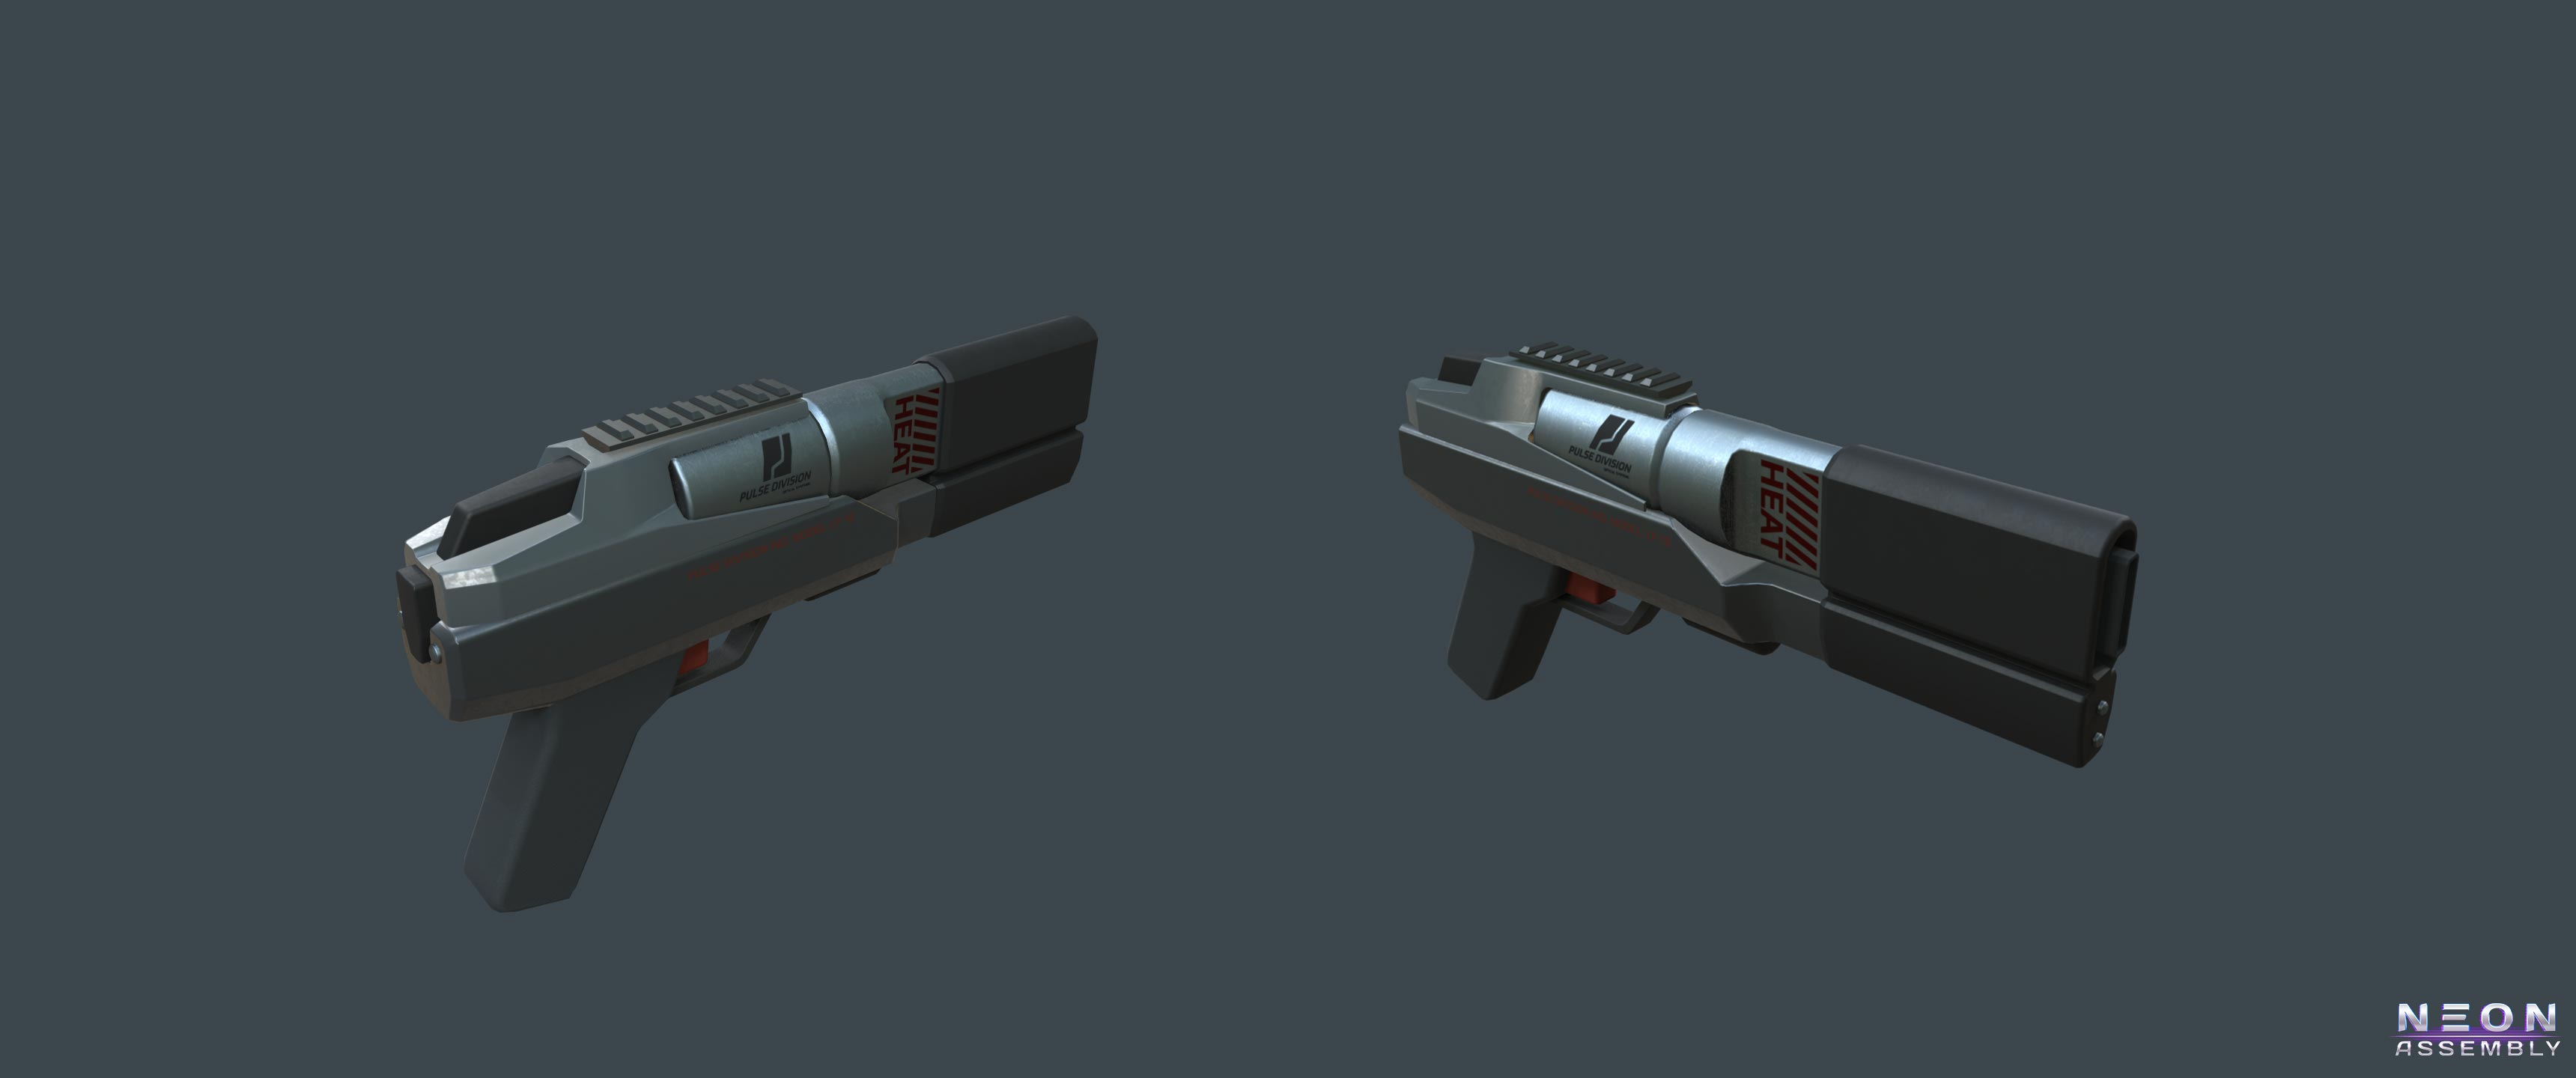 NA Laser pistol | NEON ASSEMBLY. A competetive multiplayer turn based tactics game.